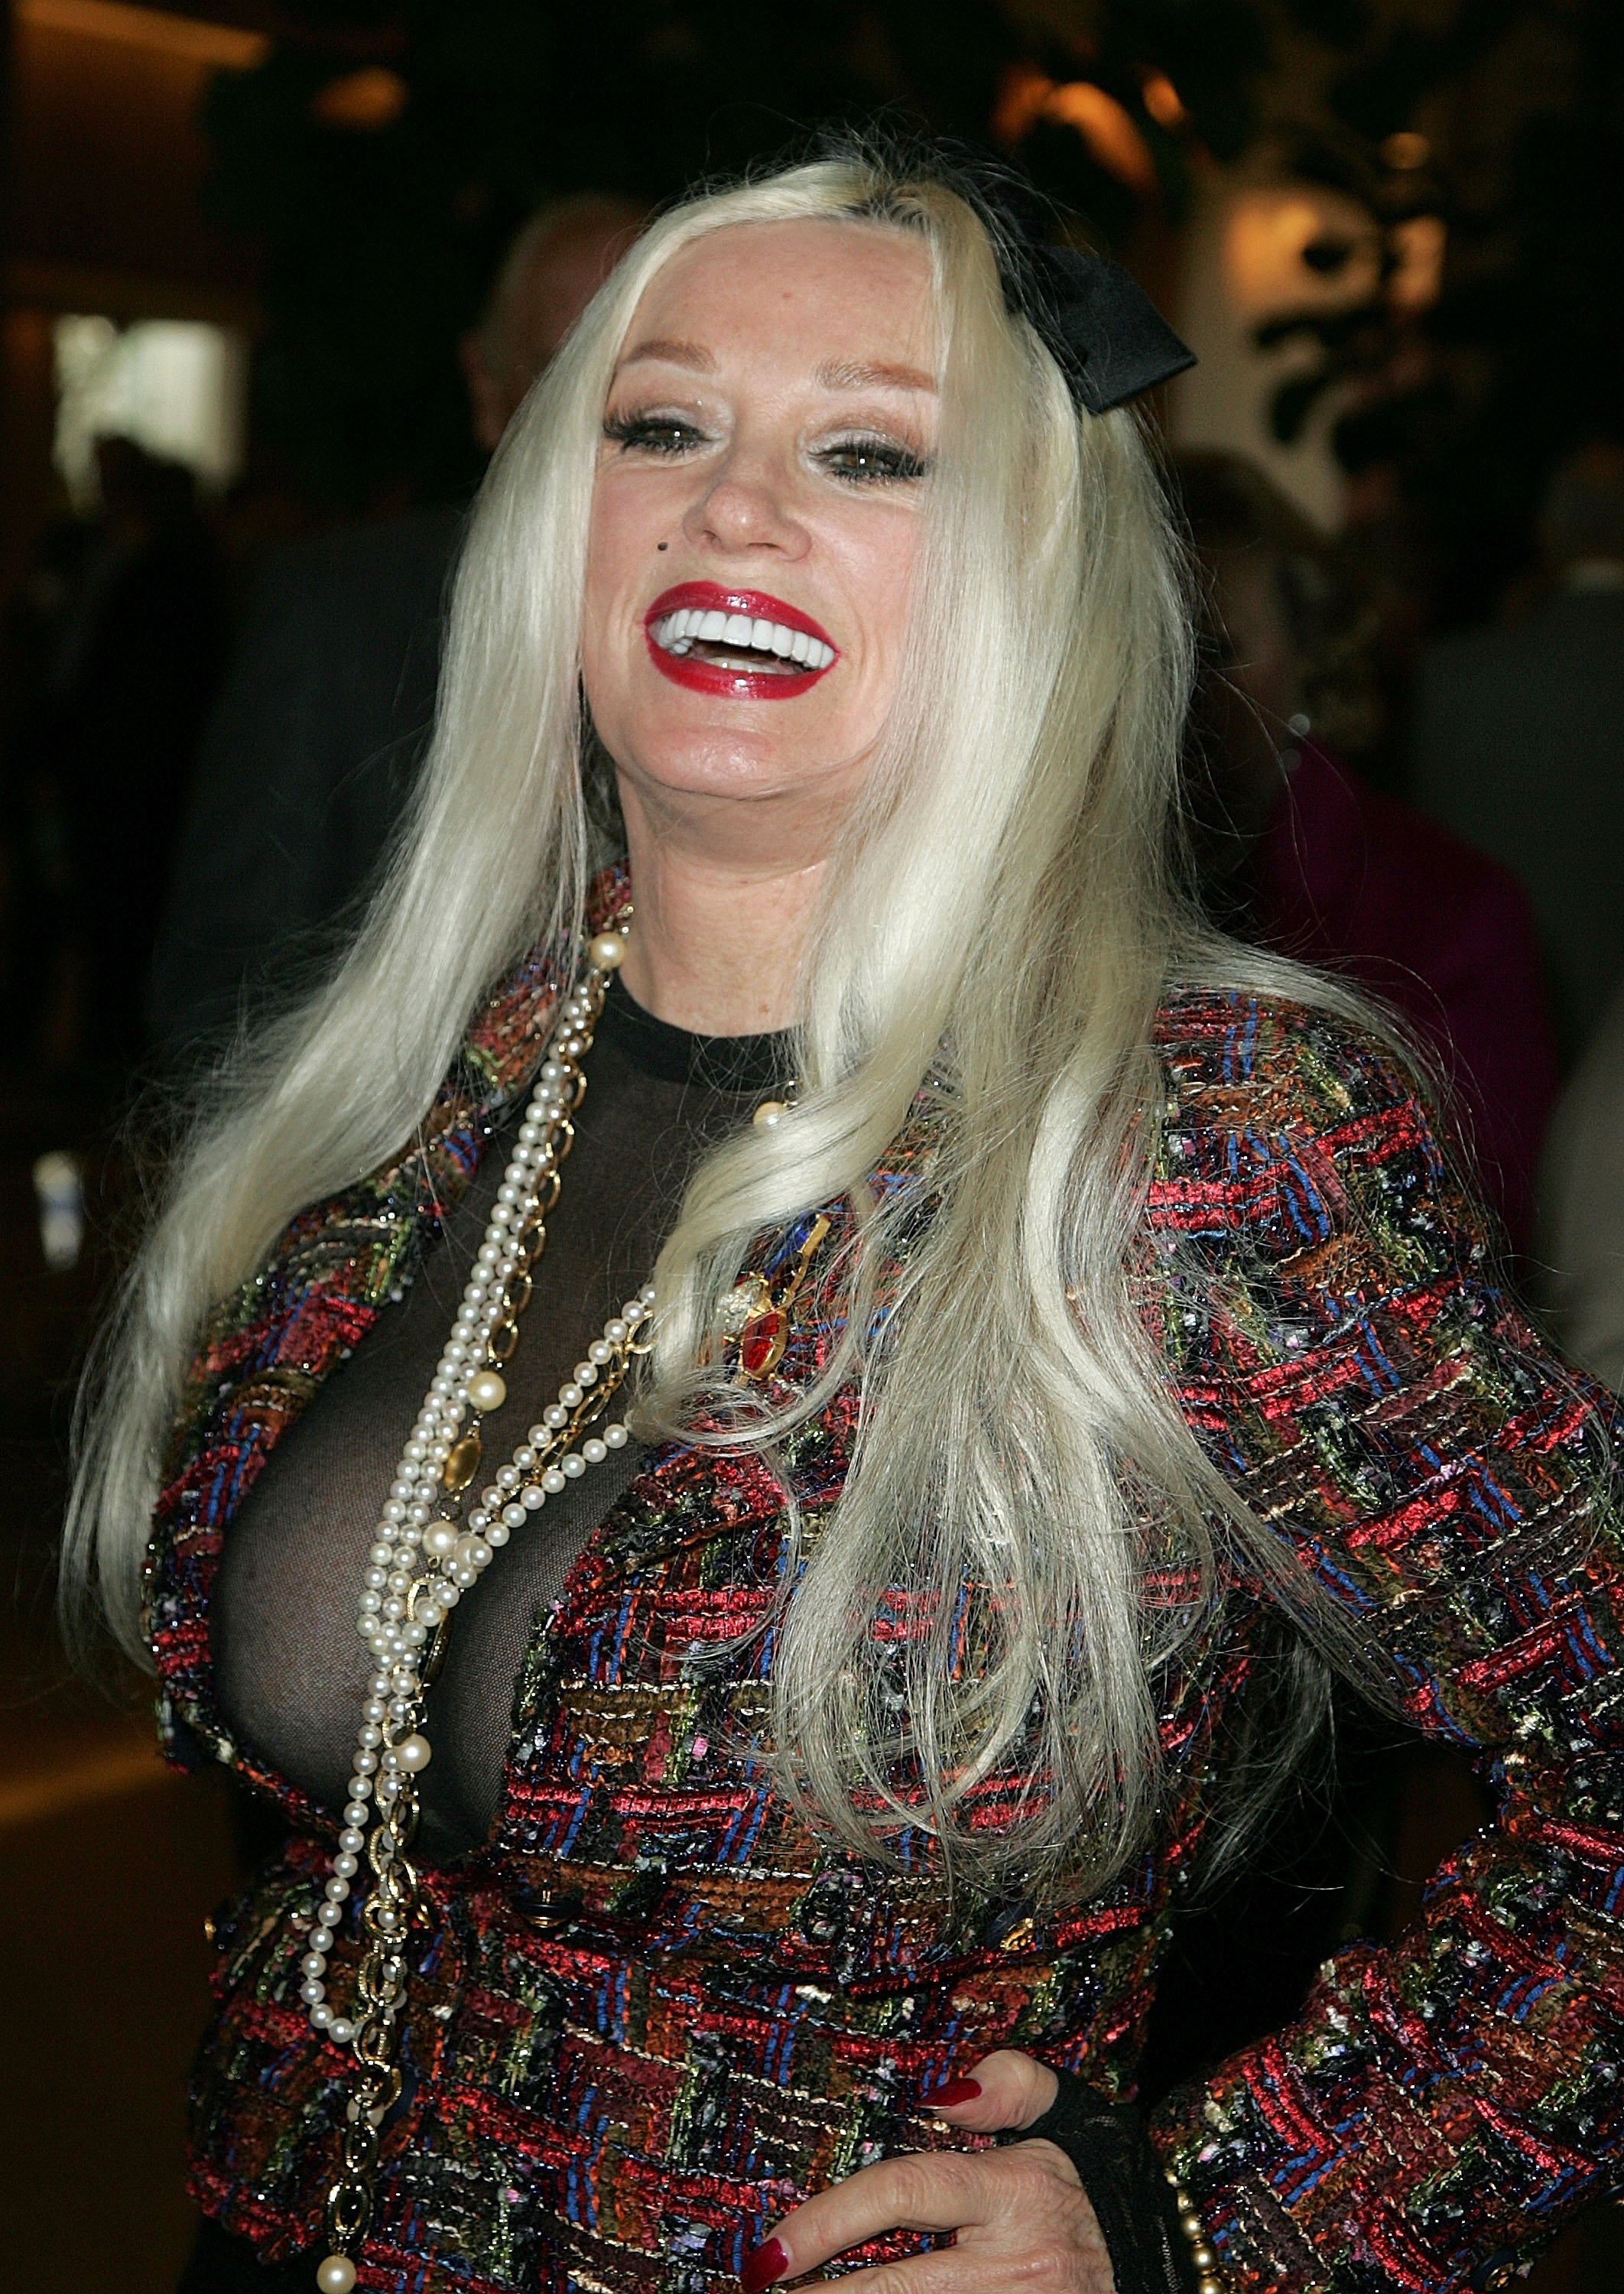 Mamie Van Doren attends a tribute to Mary Tyler Moore at the Beverly Hilton Hotel on March 16, 2008 in Beverly Hills, California | Photo: Getty Images